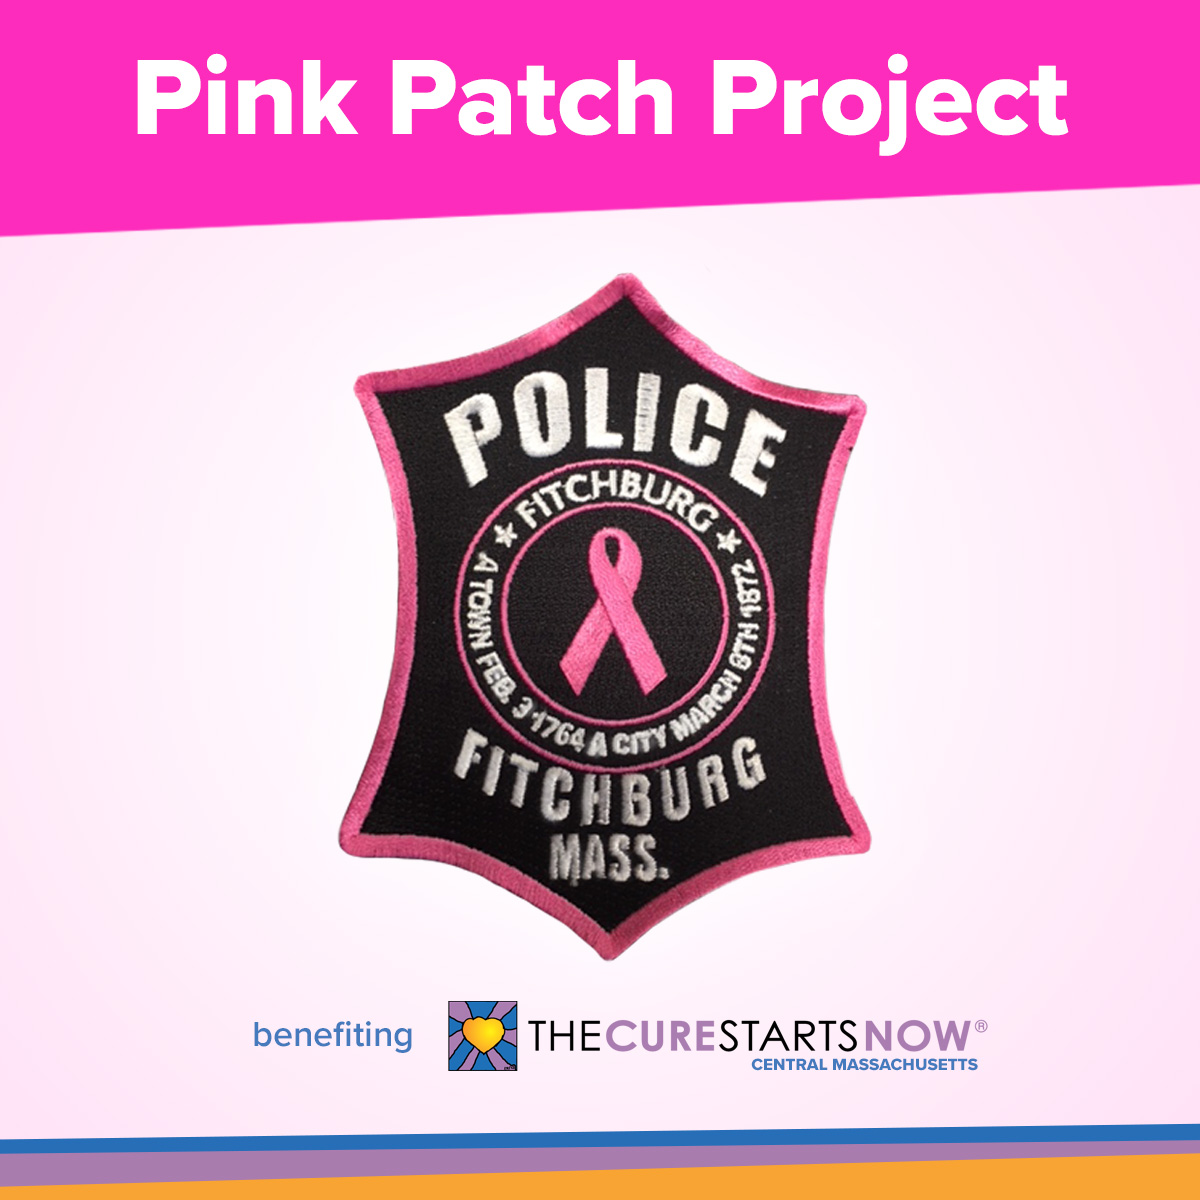 Pink Patch Project benefiting The Cure Starts Now Central Massachusetts Chapter